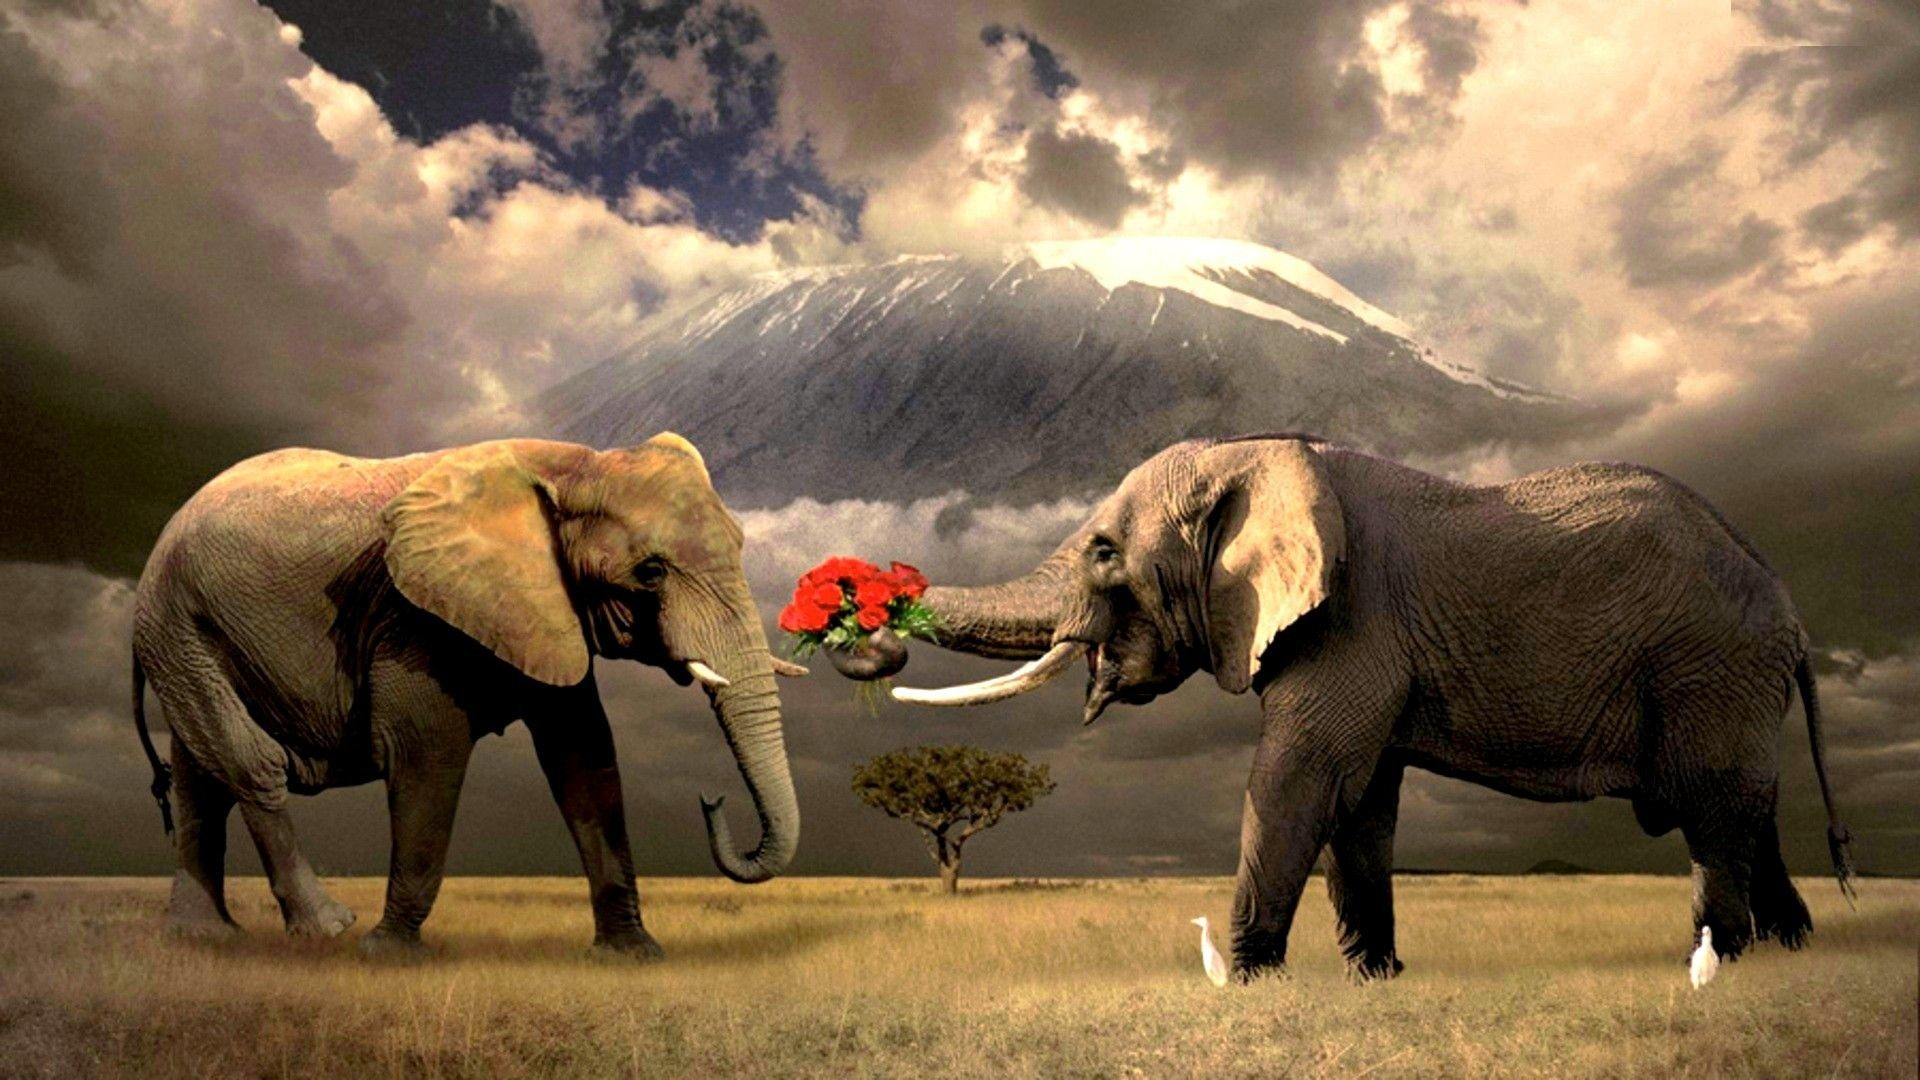 Res: 1920x1080, hd elephant wallpaper | 1080p Wallpapers, Hd Wallpapers, Pictures .